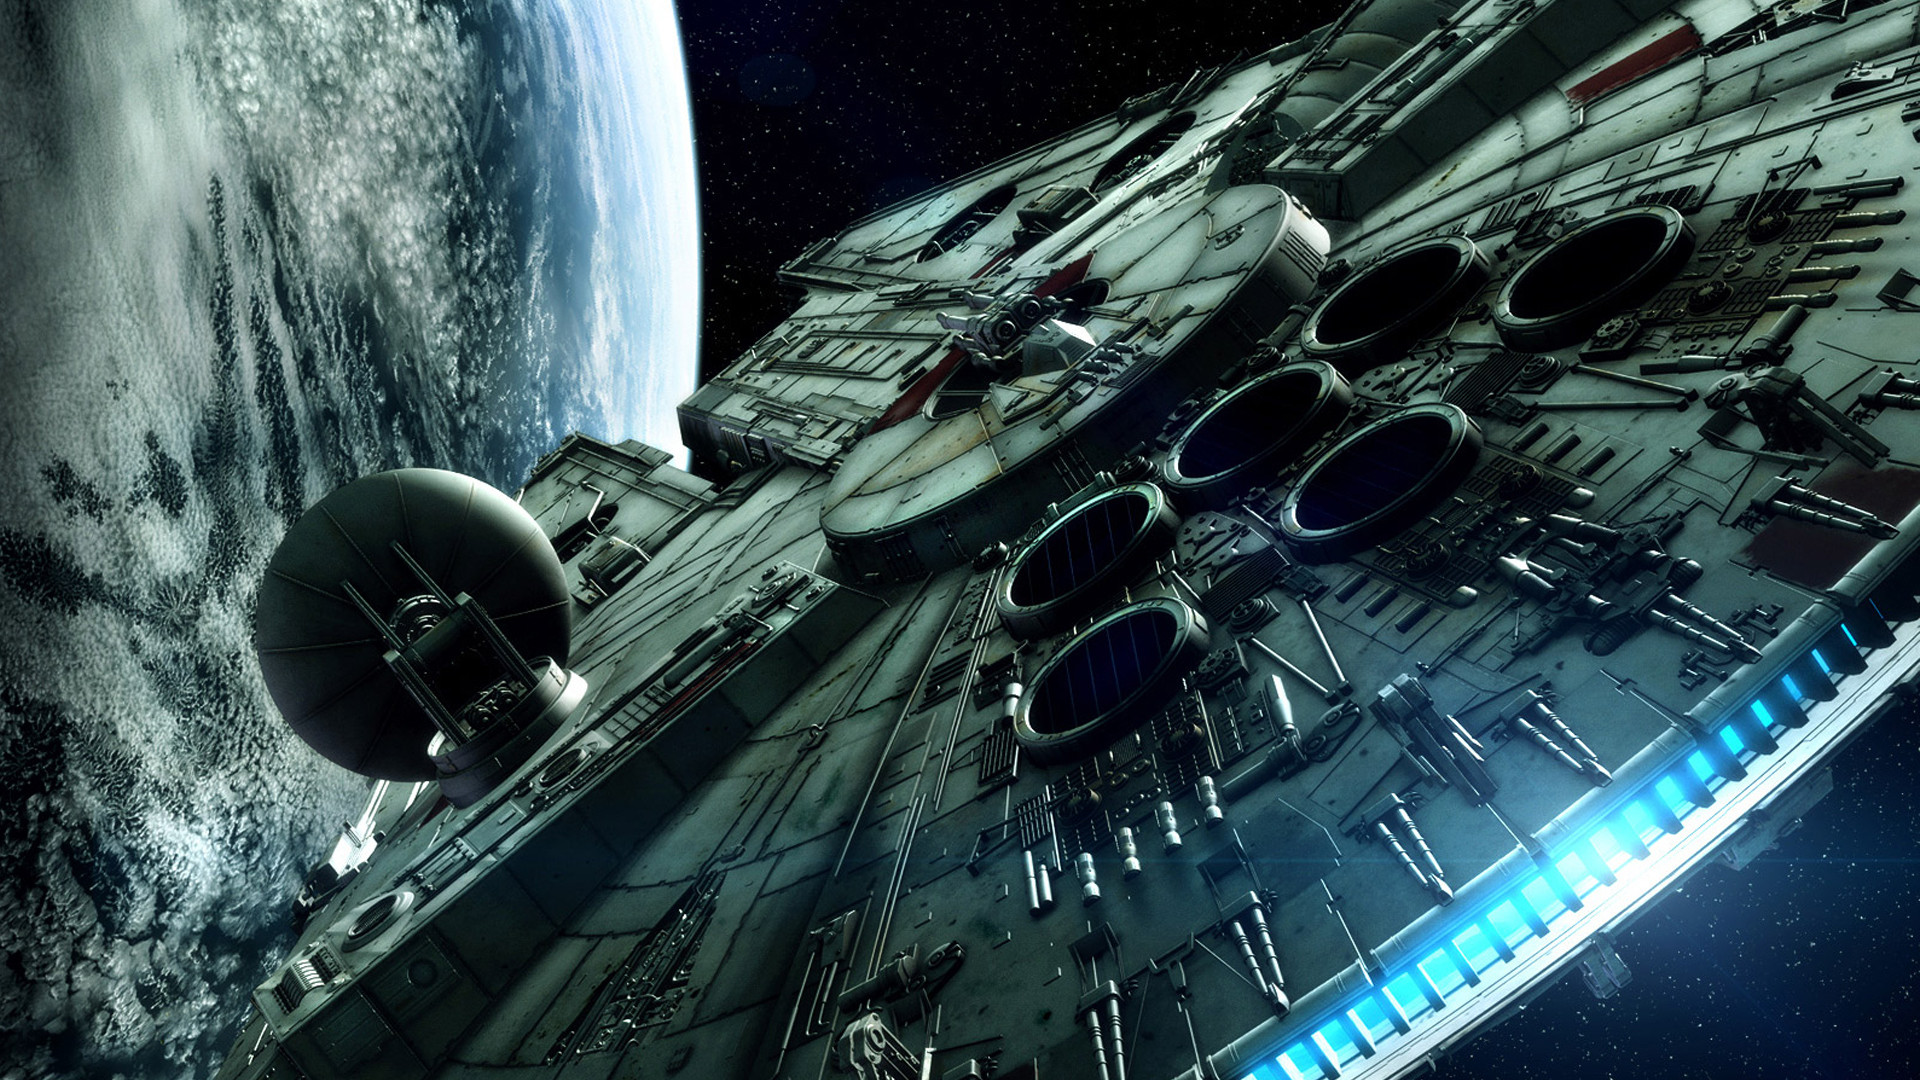 Star Wars Wallpaper Download